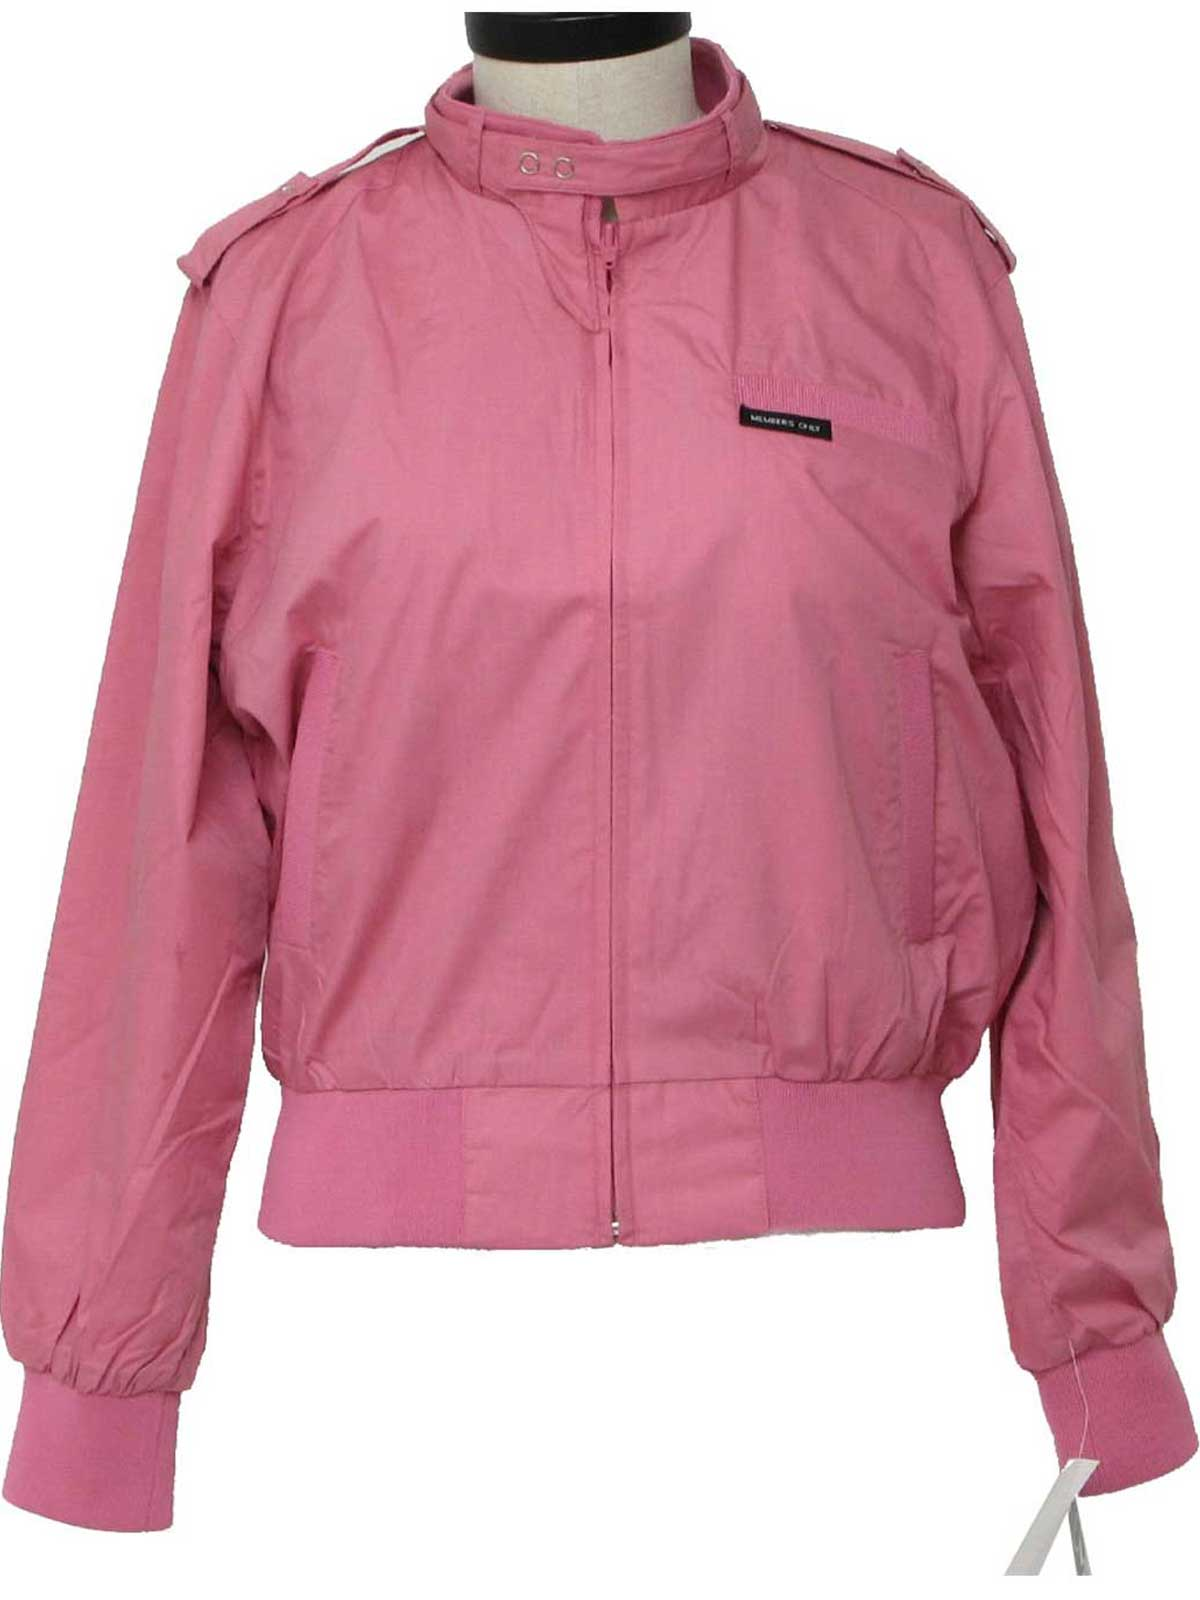 80s Jacket (Members Only): 80s -Members Only- Womens pink ...